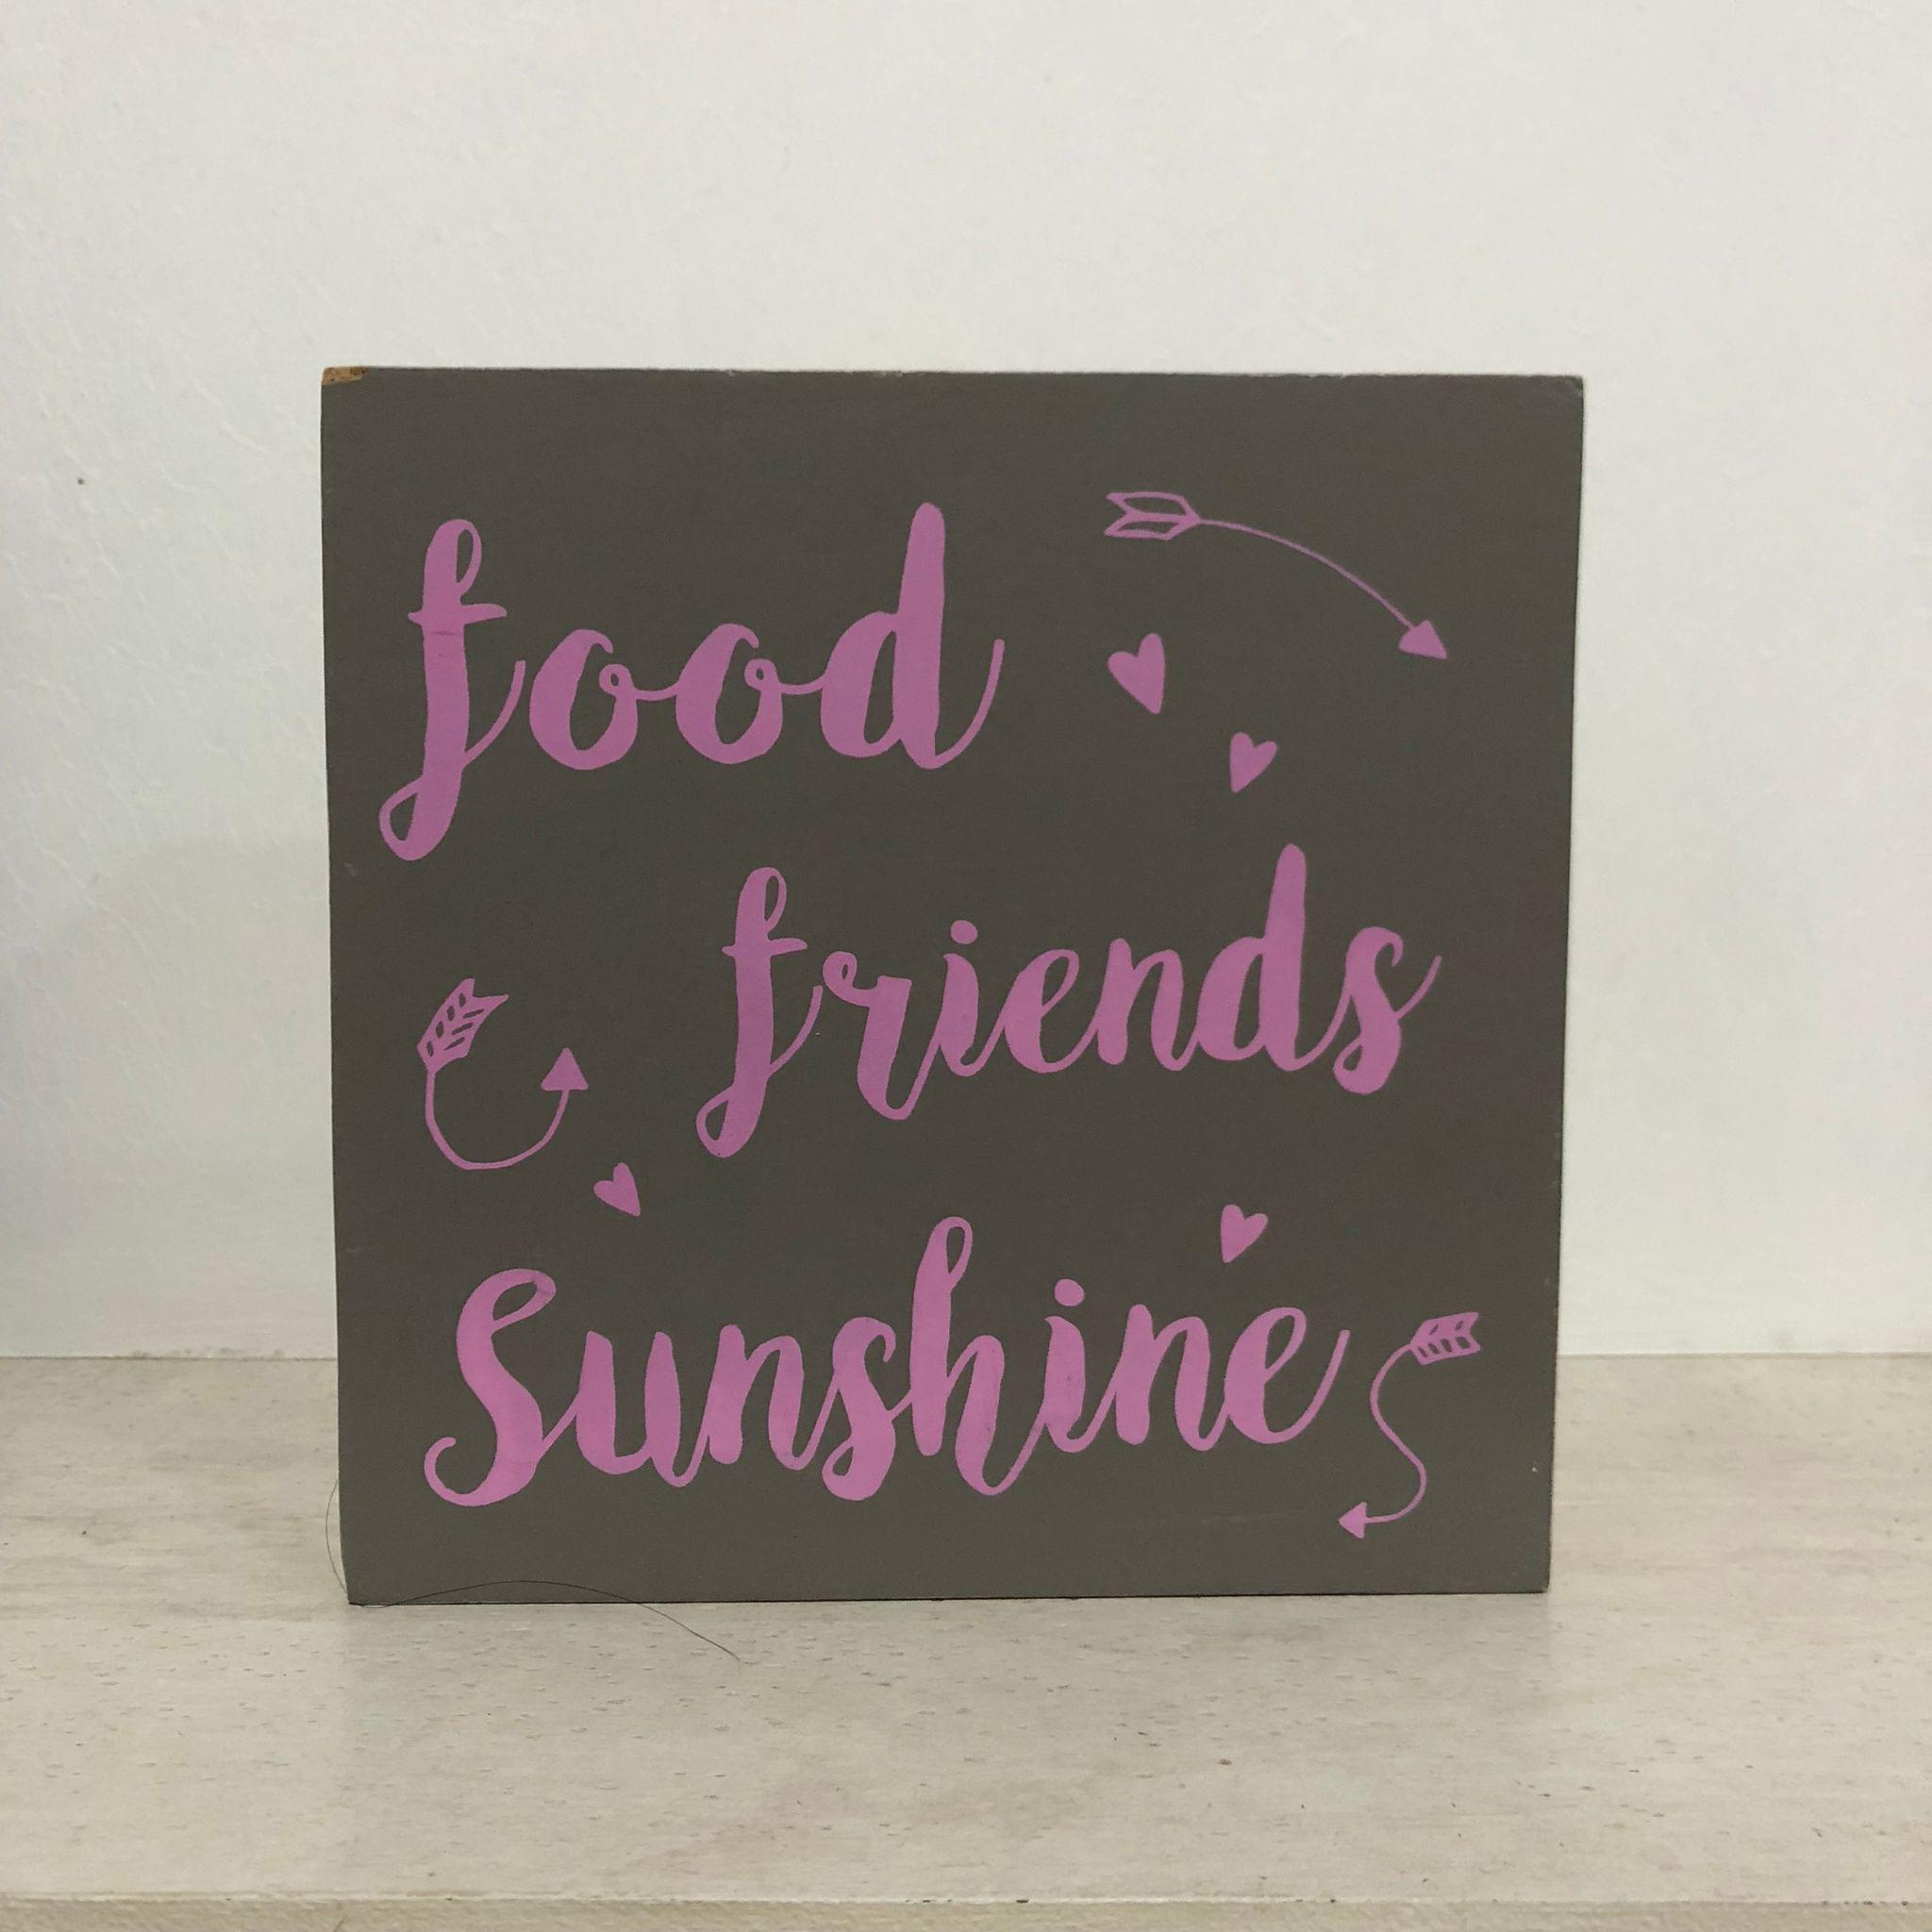 Food Friends Sunshine Wooden Block